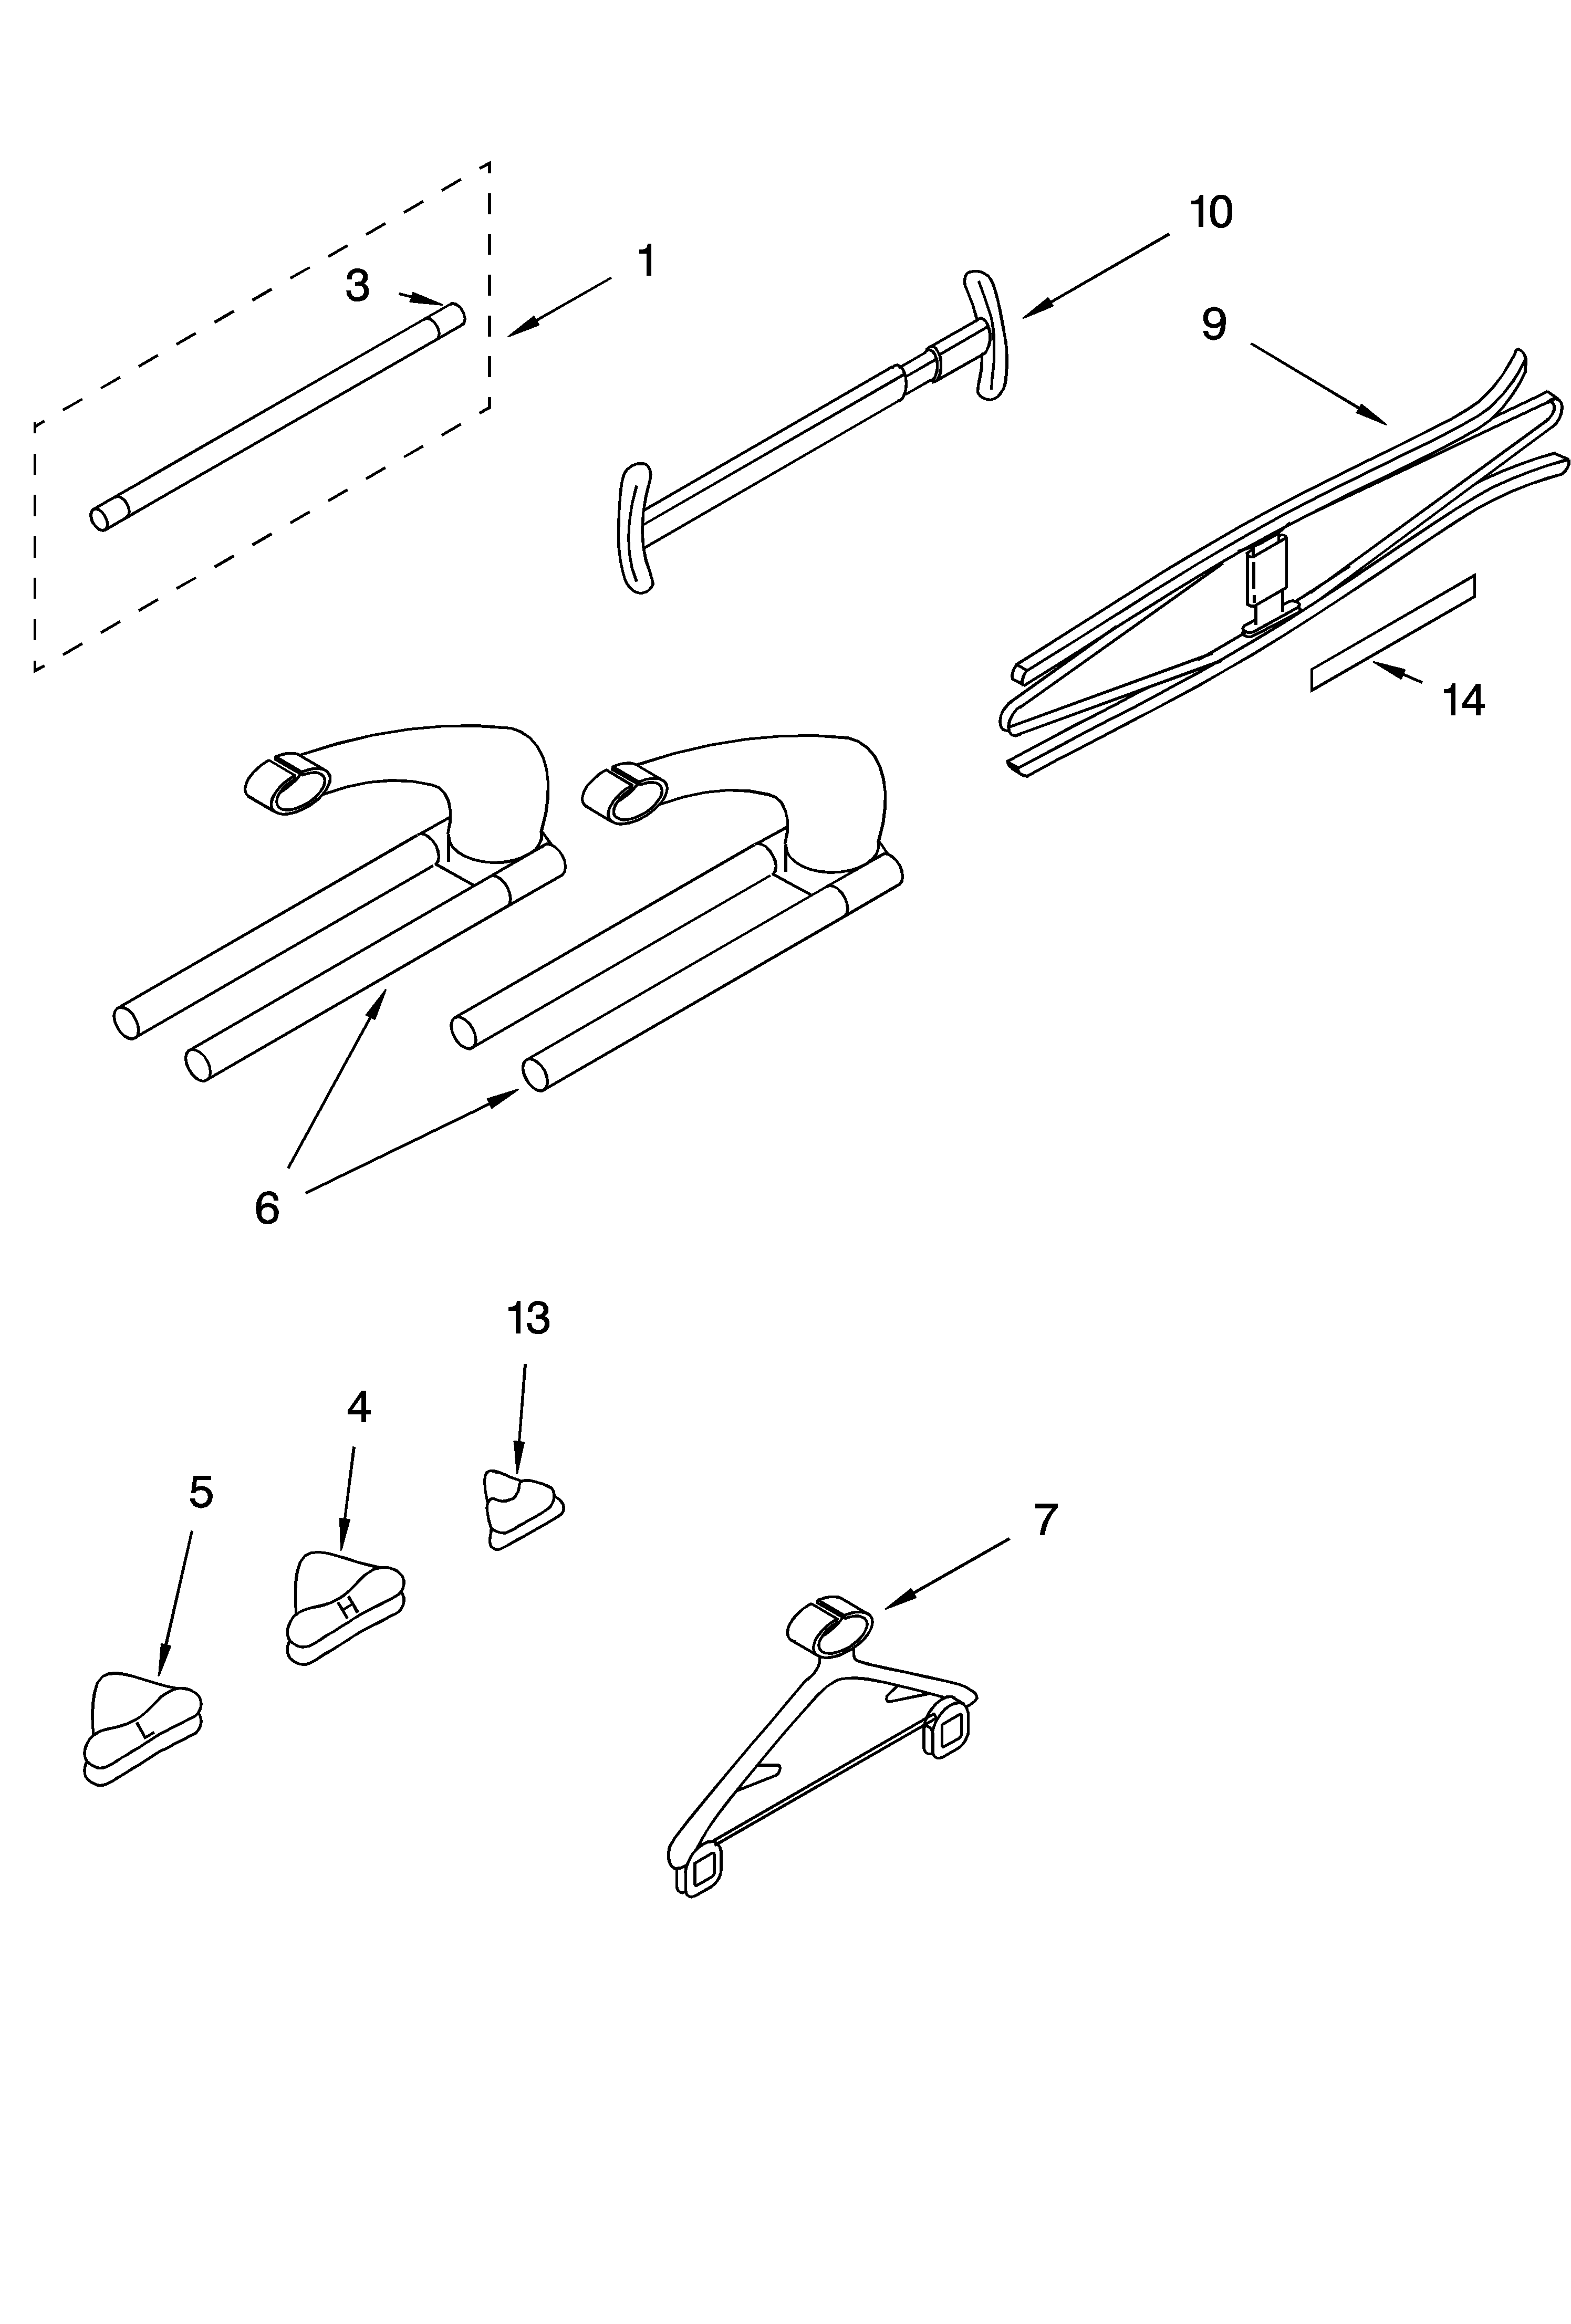 Whirlpool PVWN600LW1 accessory parts diagram